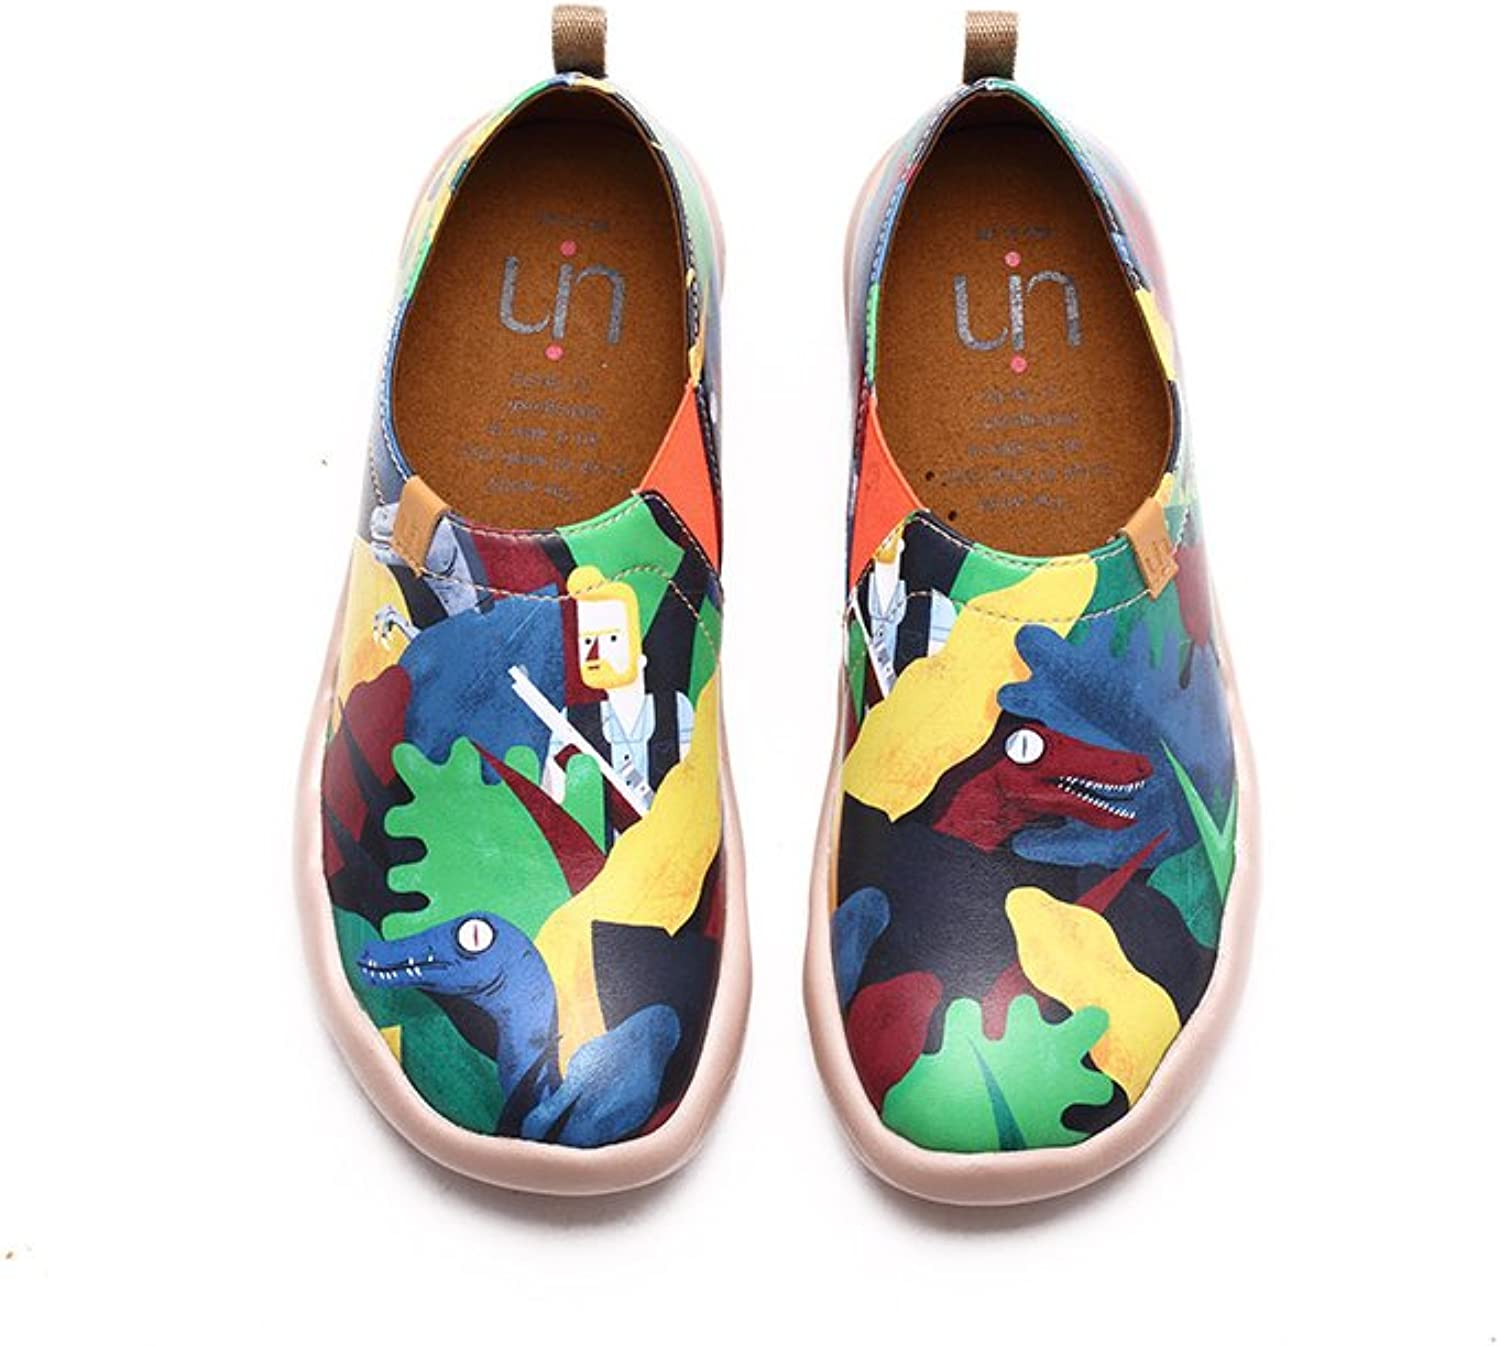 UIN Women's Jurassic Period Leather Painted Loafer shoes Multicolord